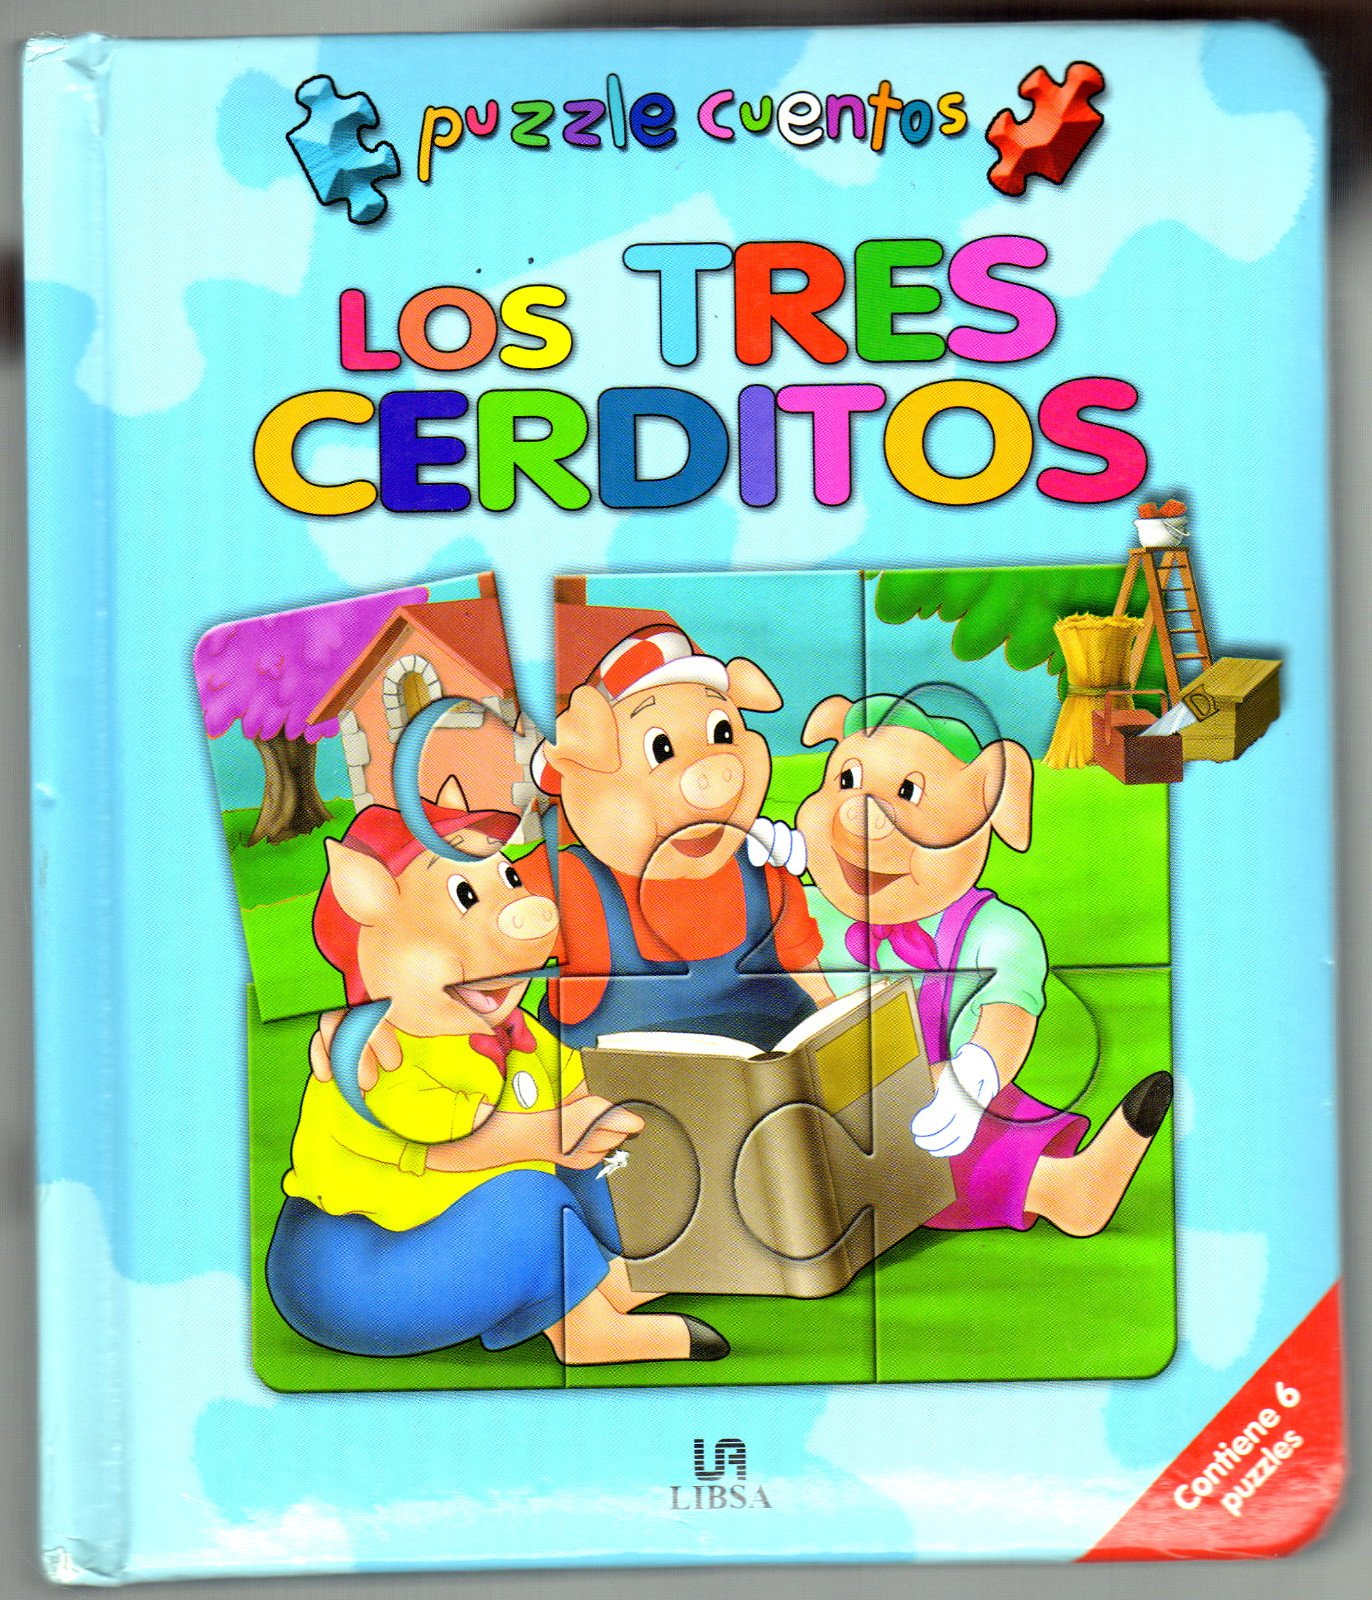 Los tres cerditos/ The Three Little Pigs (Spanish Edition) (Spanish) Hardcover – October 30, 2007